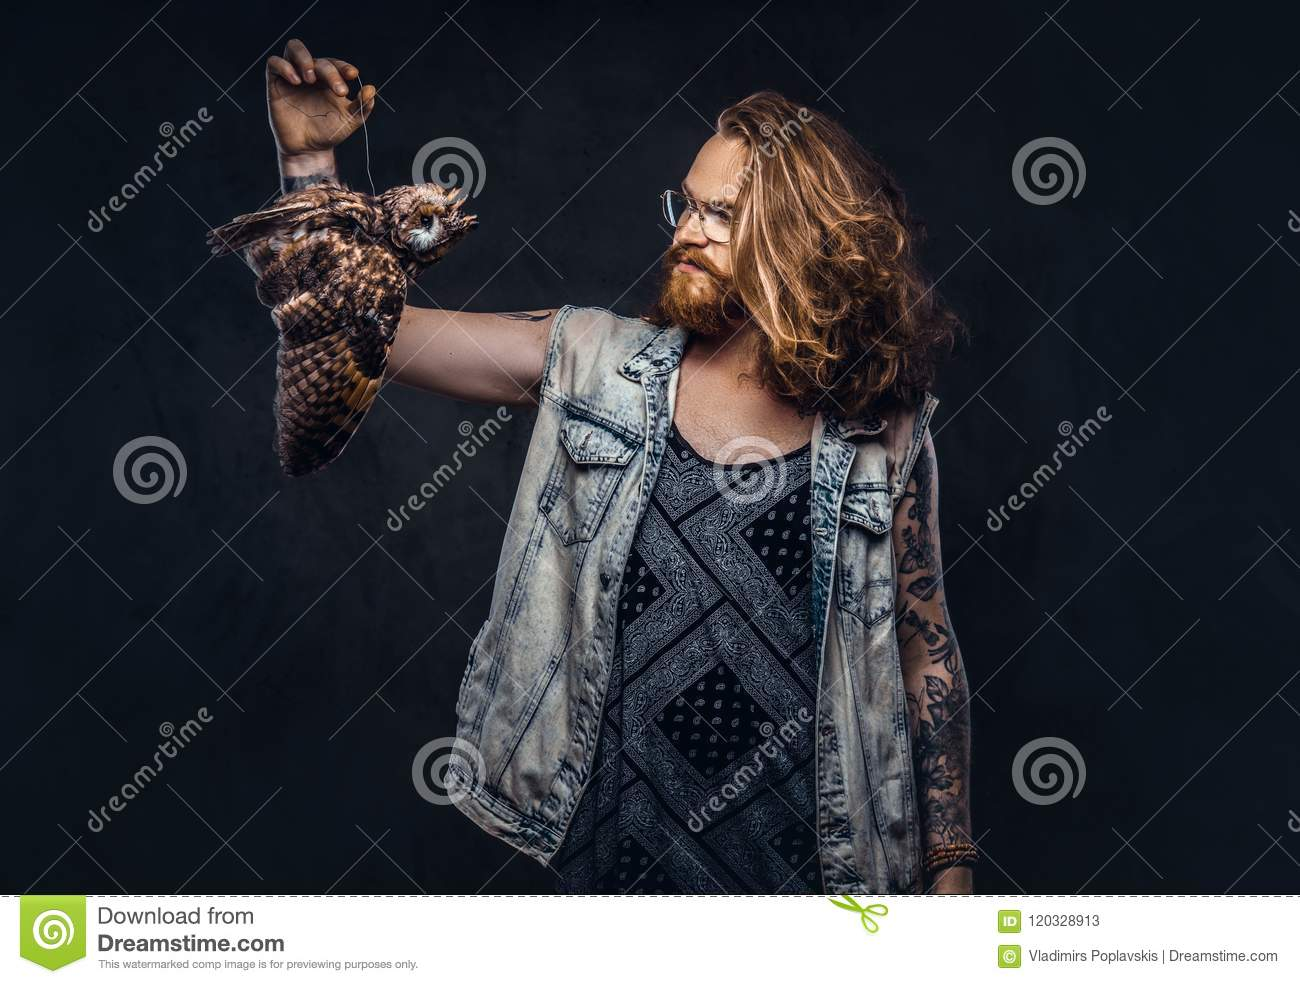 Portrait of a tattoed redhead hipster male with long luxuriant hair and full beard dressed in a t-shirt and jacket holds